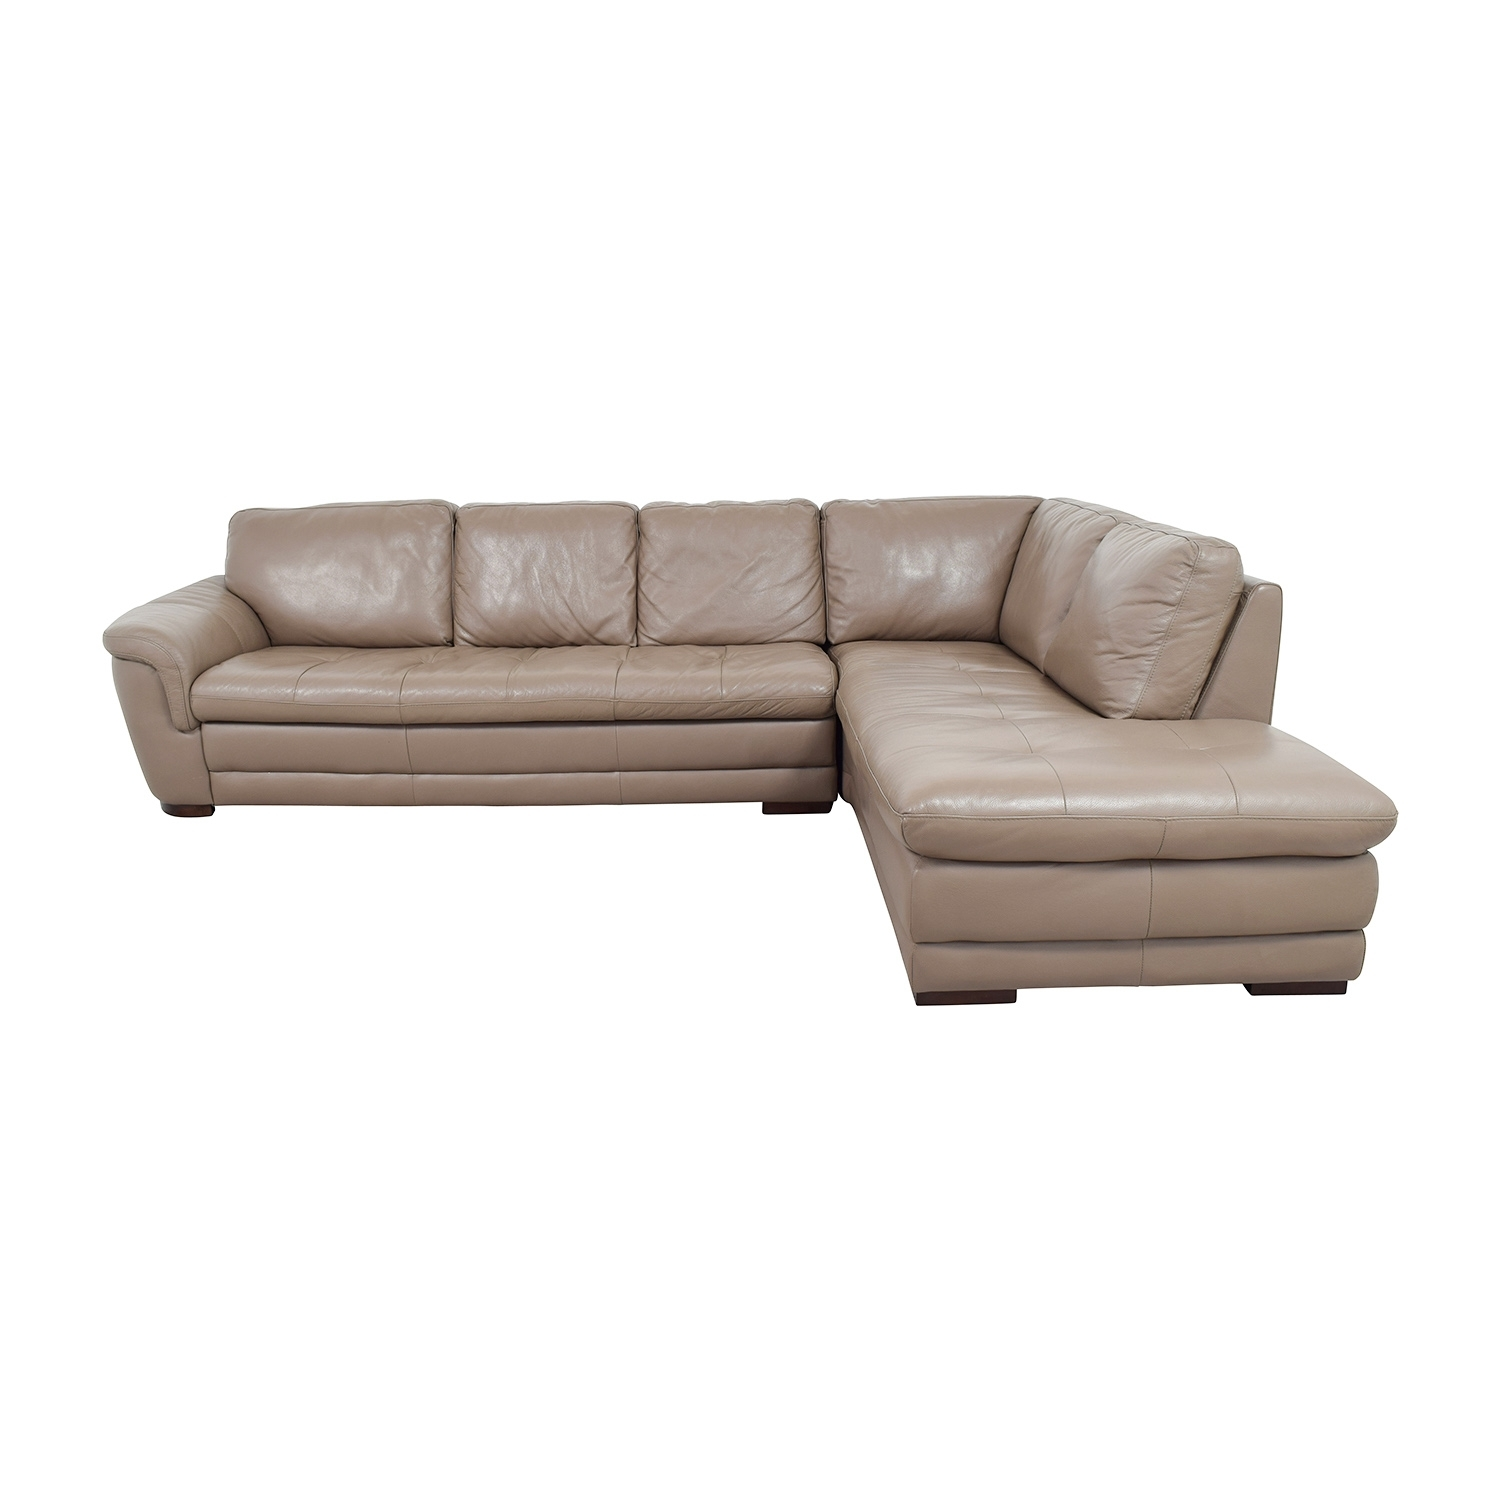 74% Off   Raymour And Flanigan Raymour & Flanigan Tan Tufted Leather Throughout Sectional Sofas At Raymour And Flanigan (Photo 7 of 15)